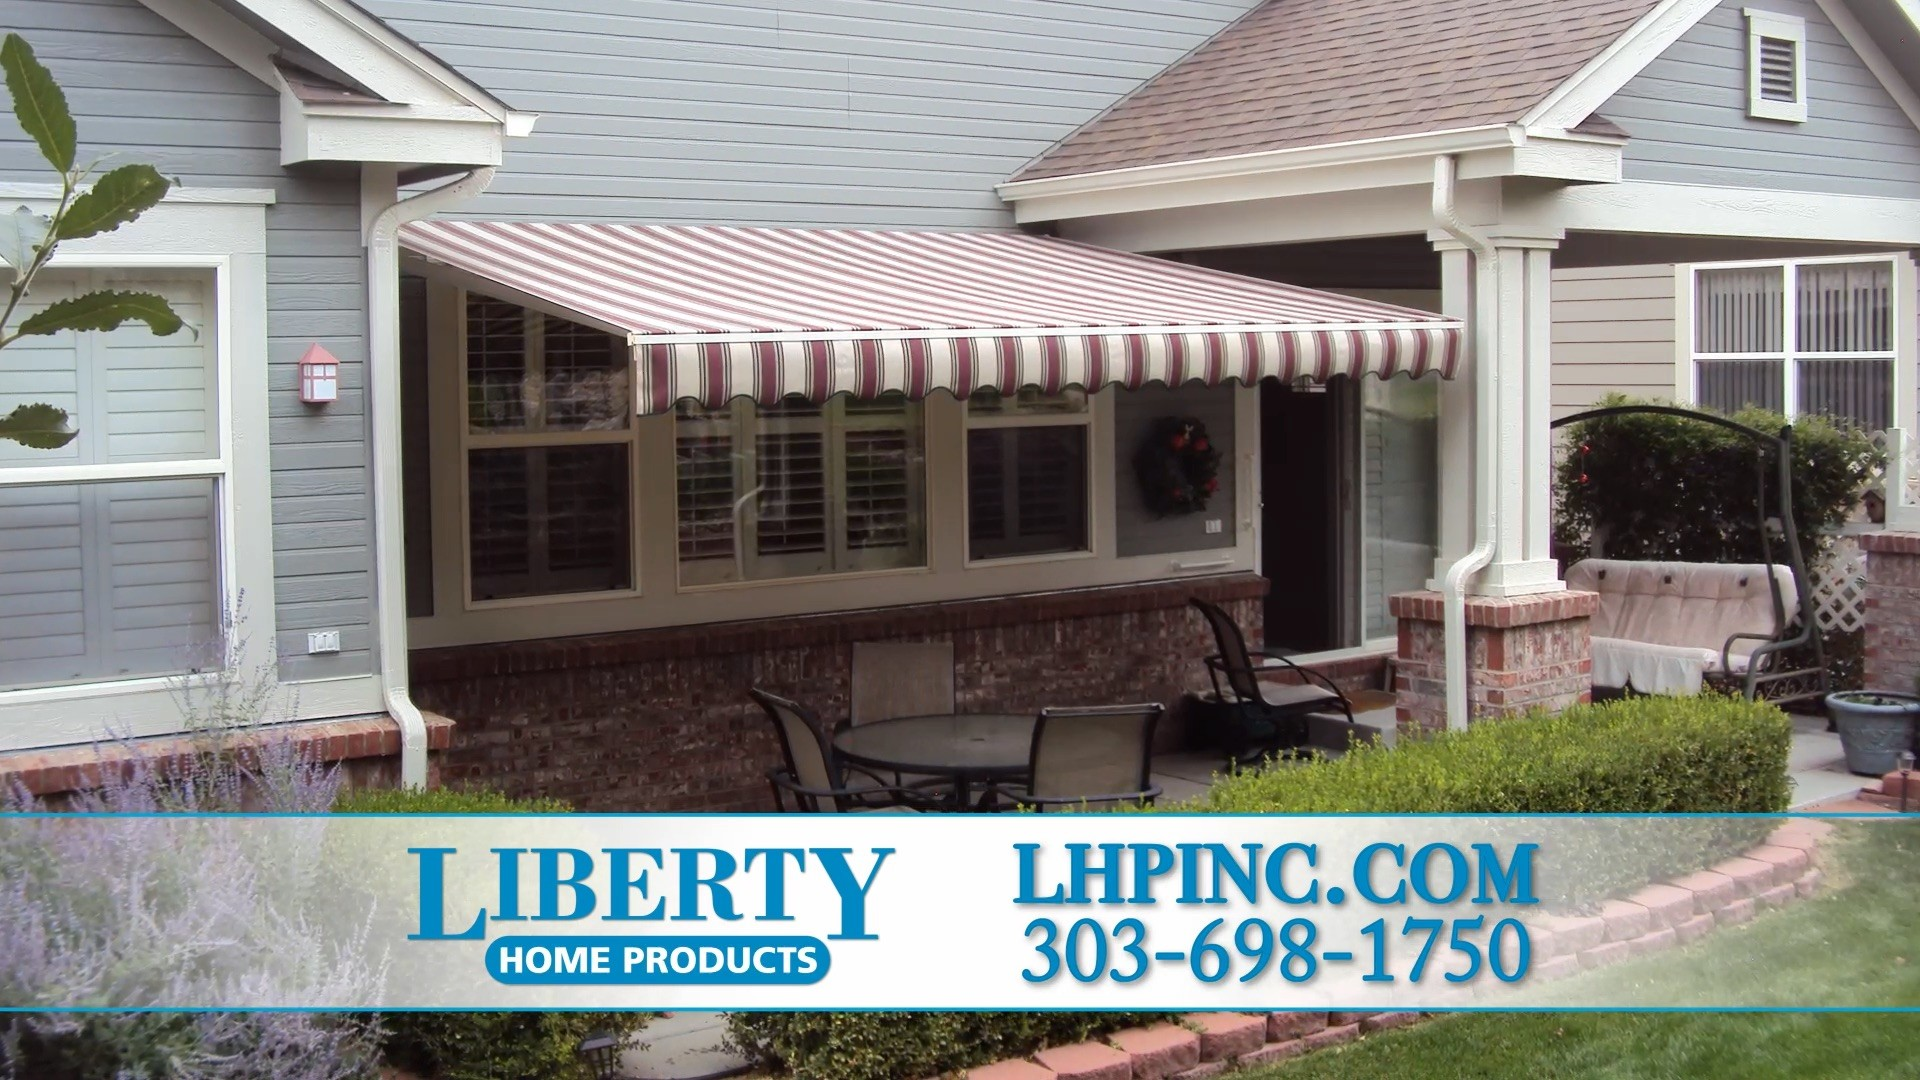 Liberty Home Products: Shade